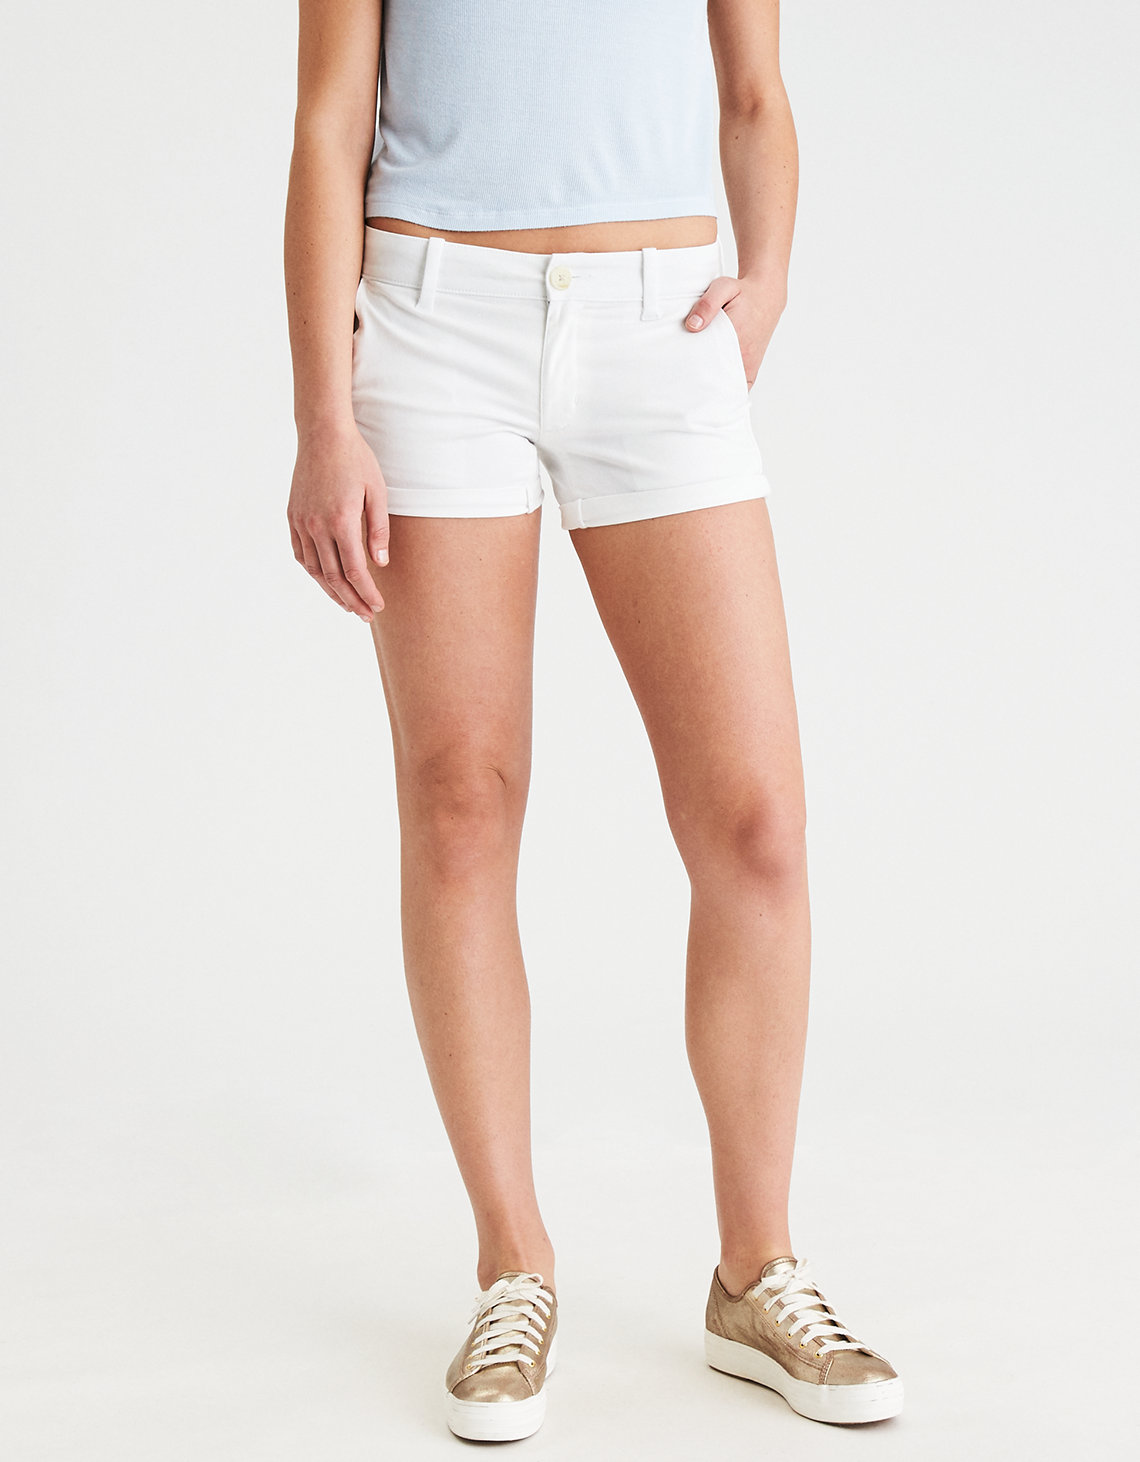 Womens Stretch Shorts | American Eagle Outfitters